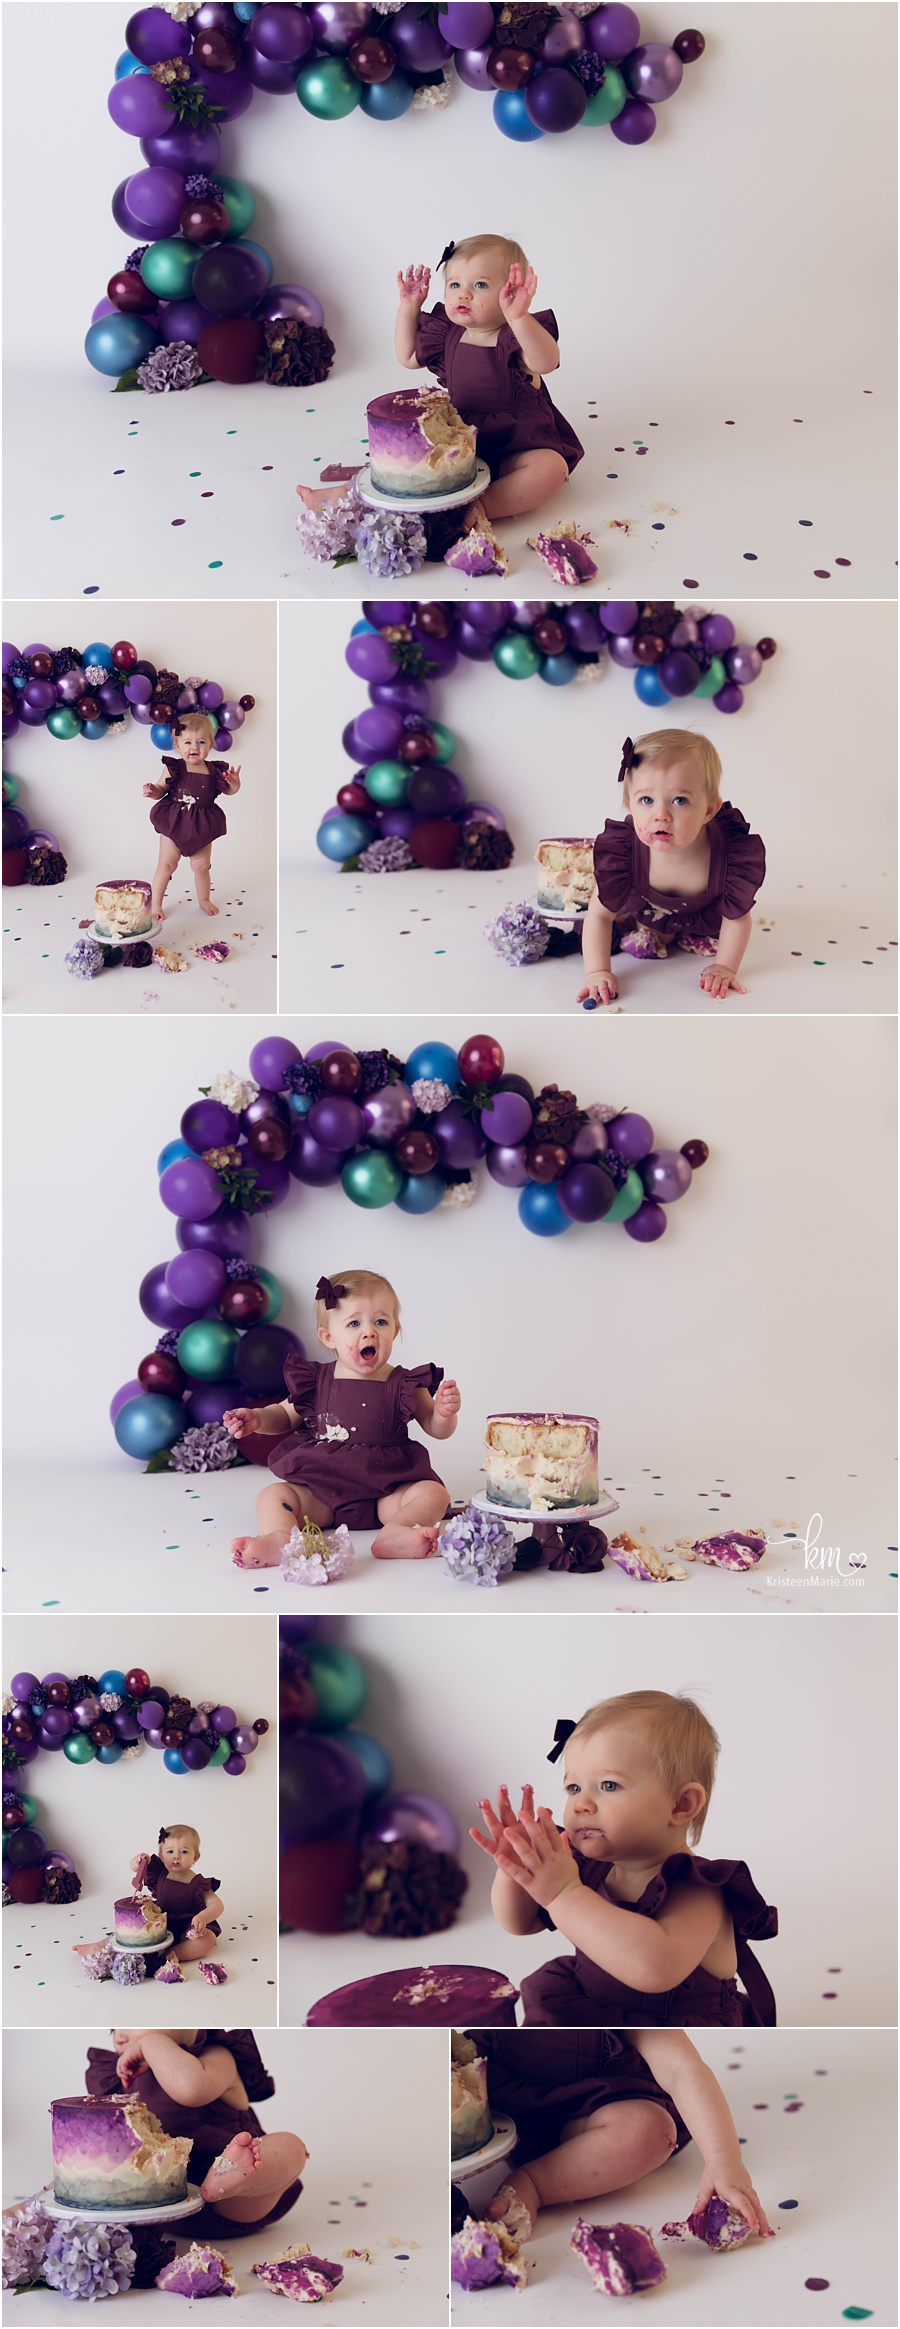 purple, blue, green and plum cake smash session for baby's 1st birthday - KristeenMarie Photography